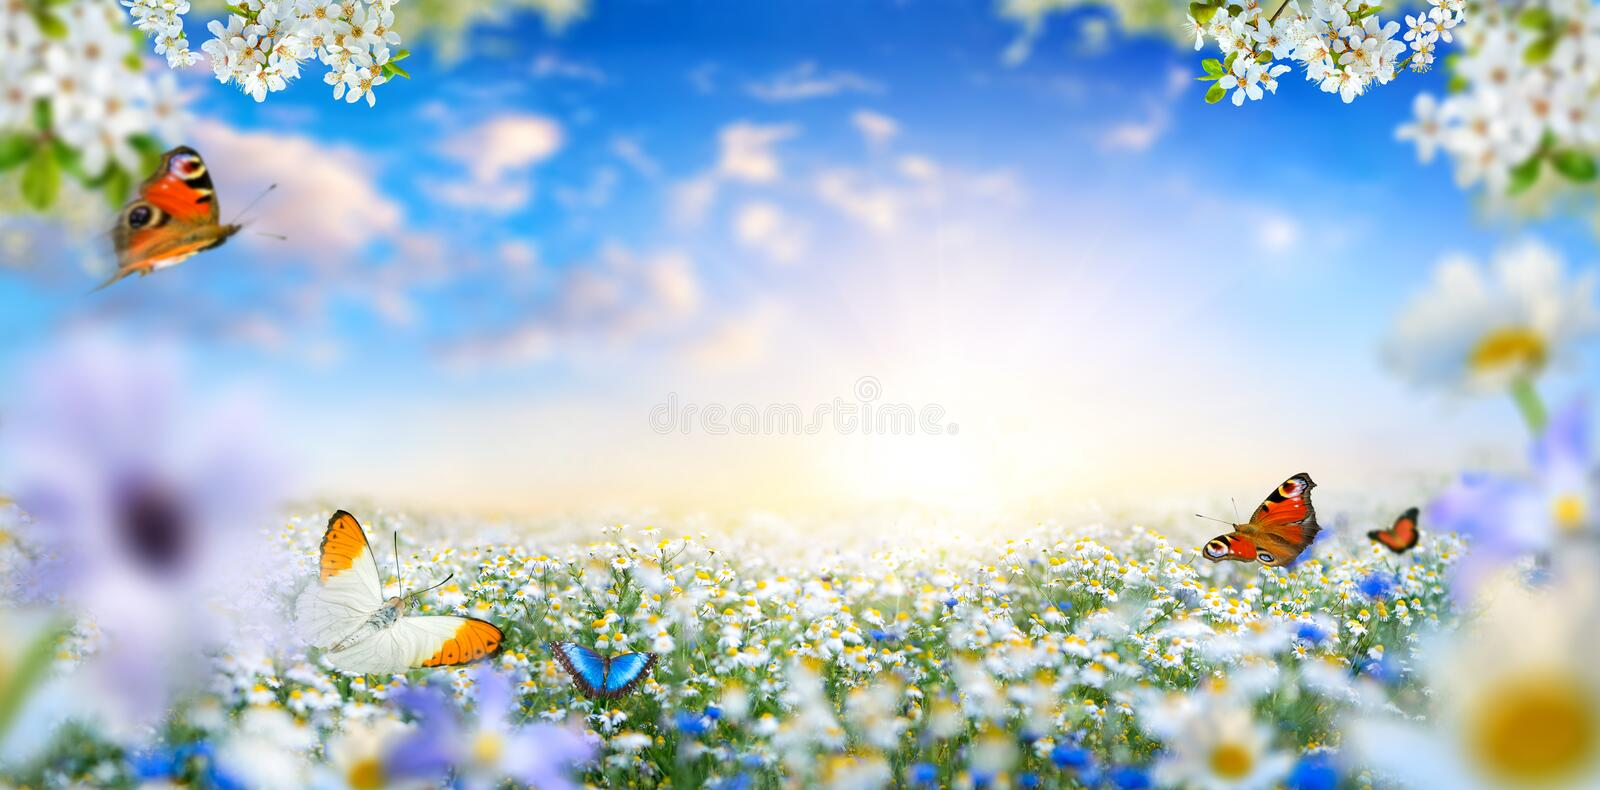 Dreamland fantasy spring landscape with flowers and butterflies royalty free stock photography